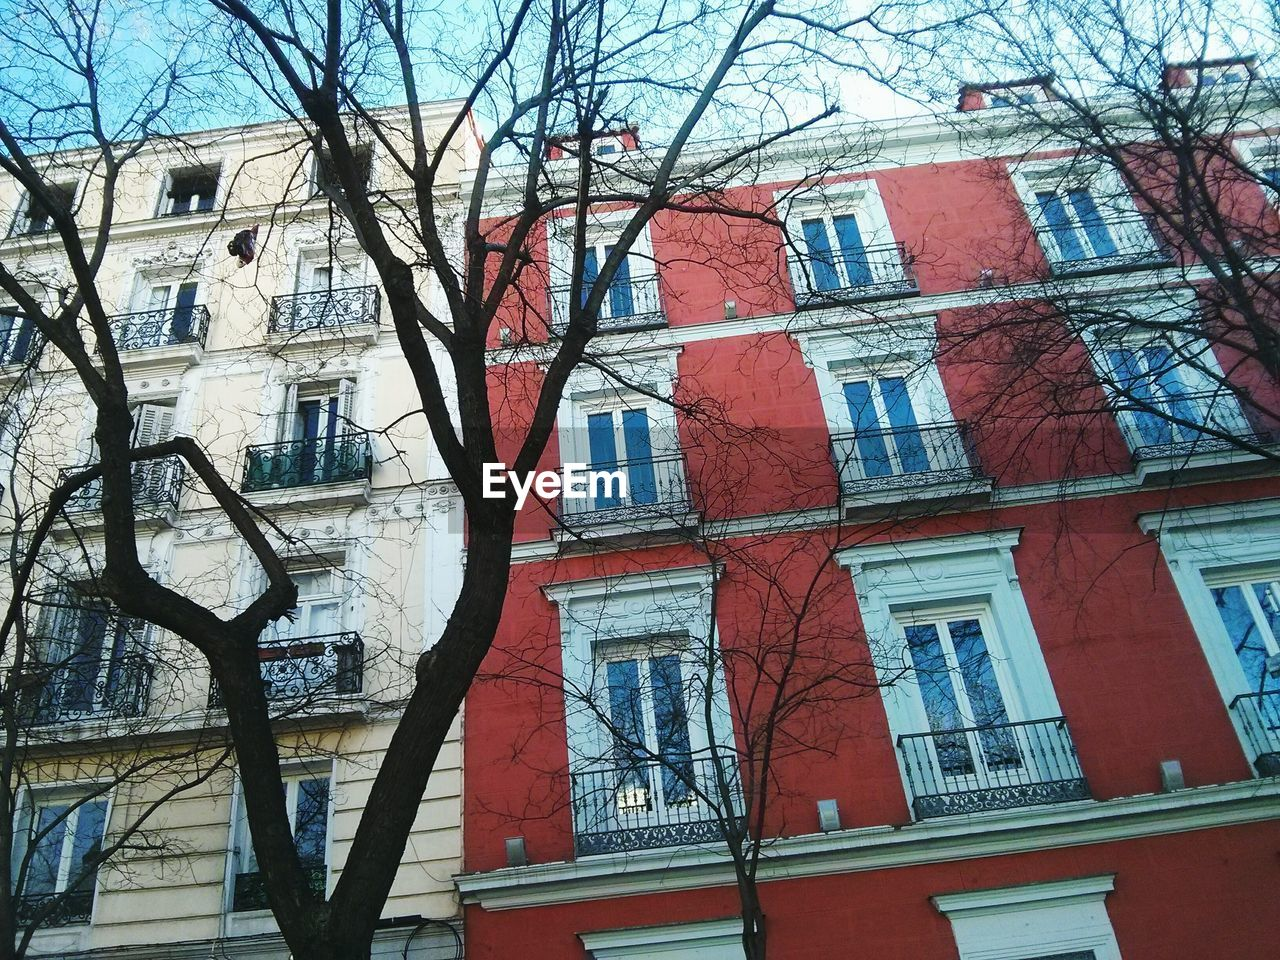 architecture, building exterior, bare tree, built structure, window, low angle view, no people, tree, branch, day, outdoors, city, sky